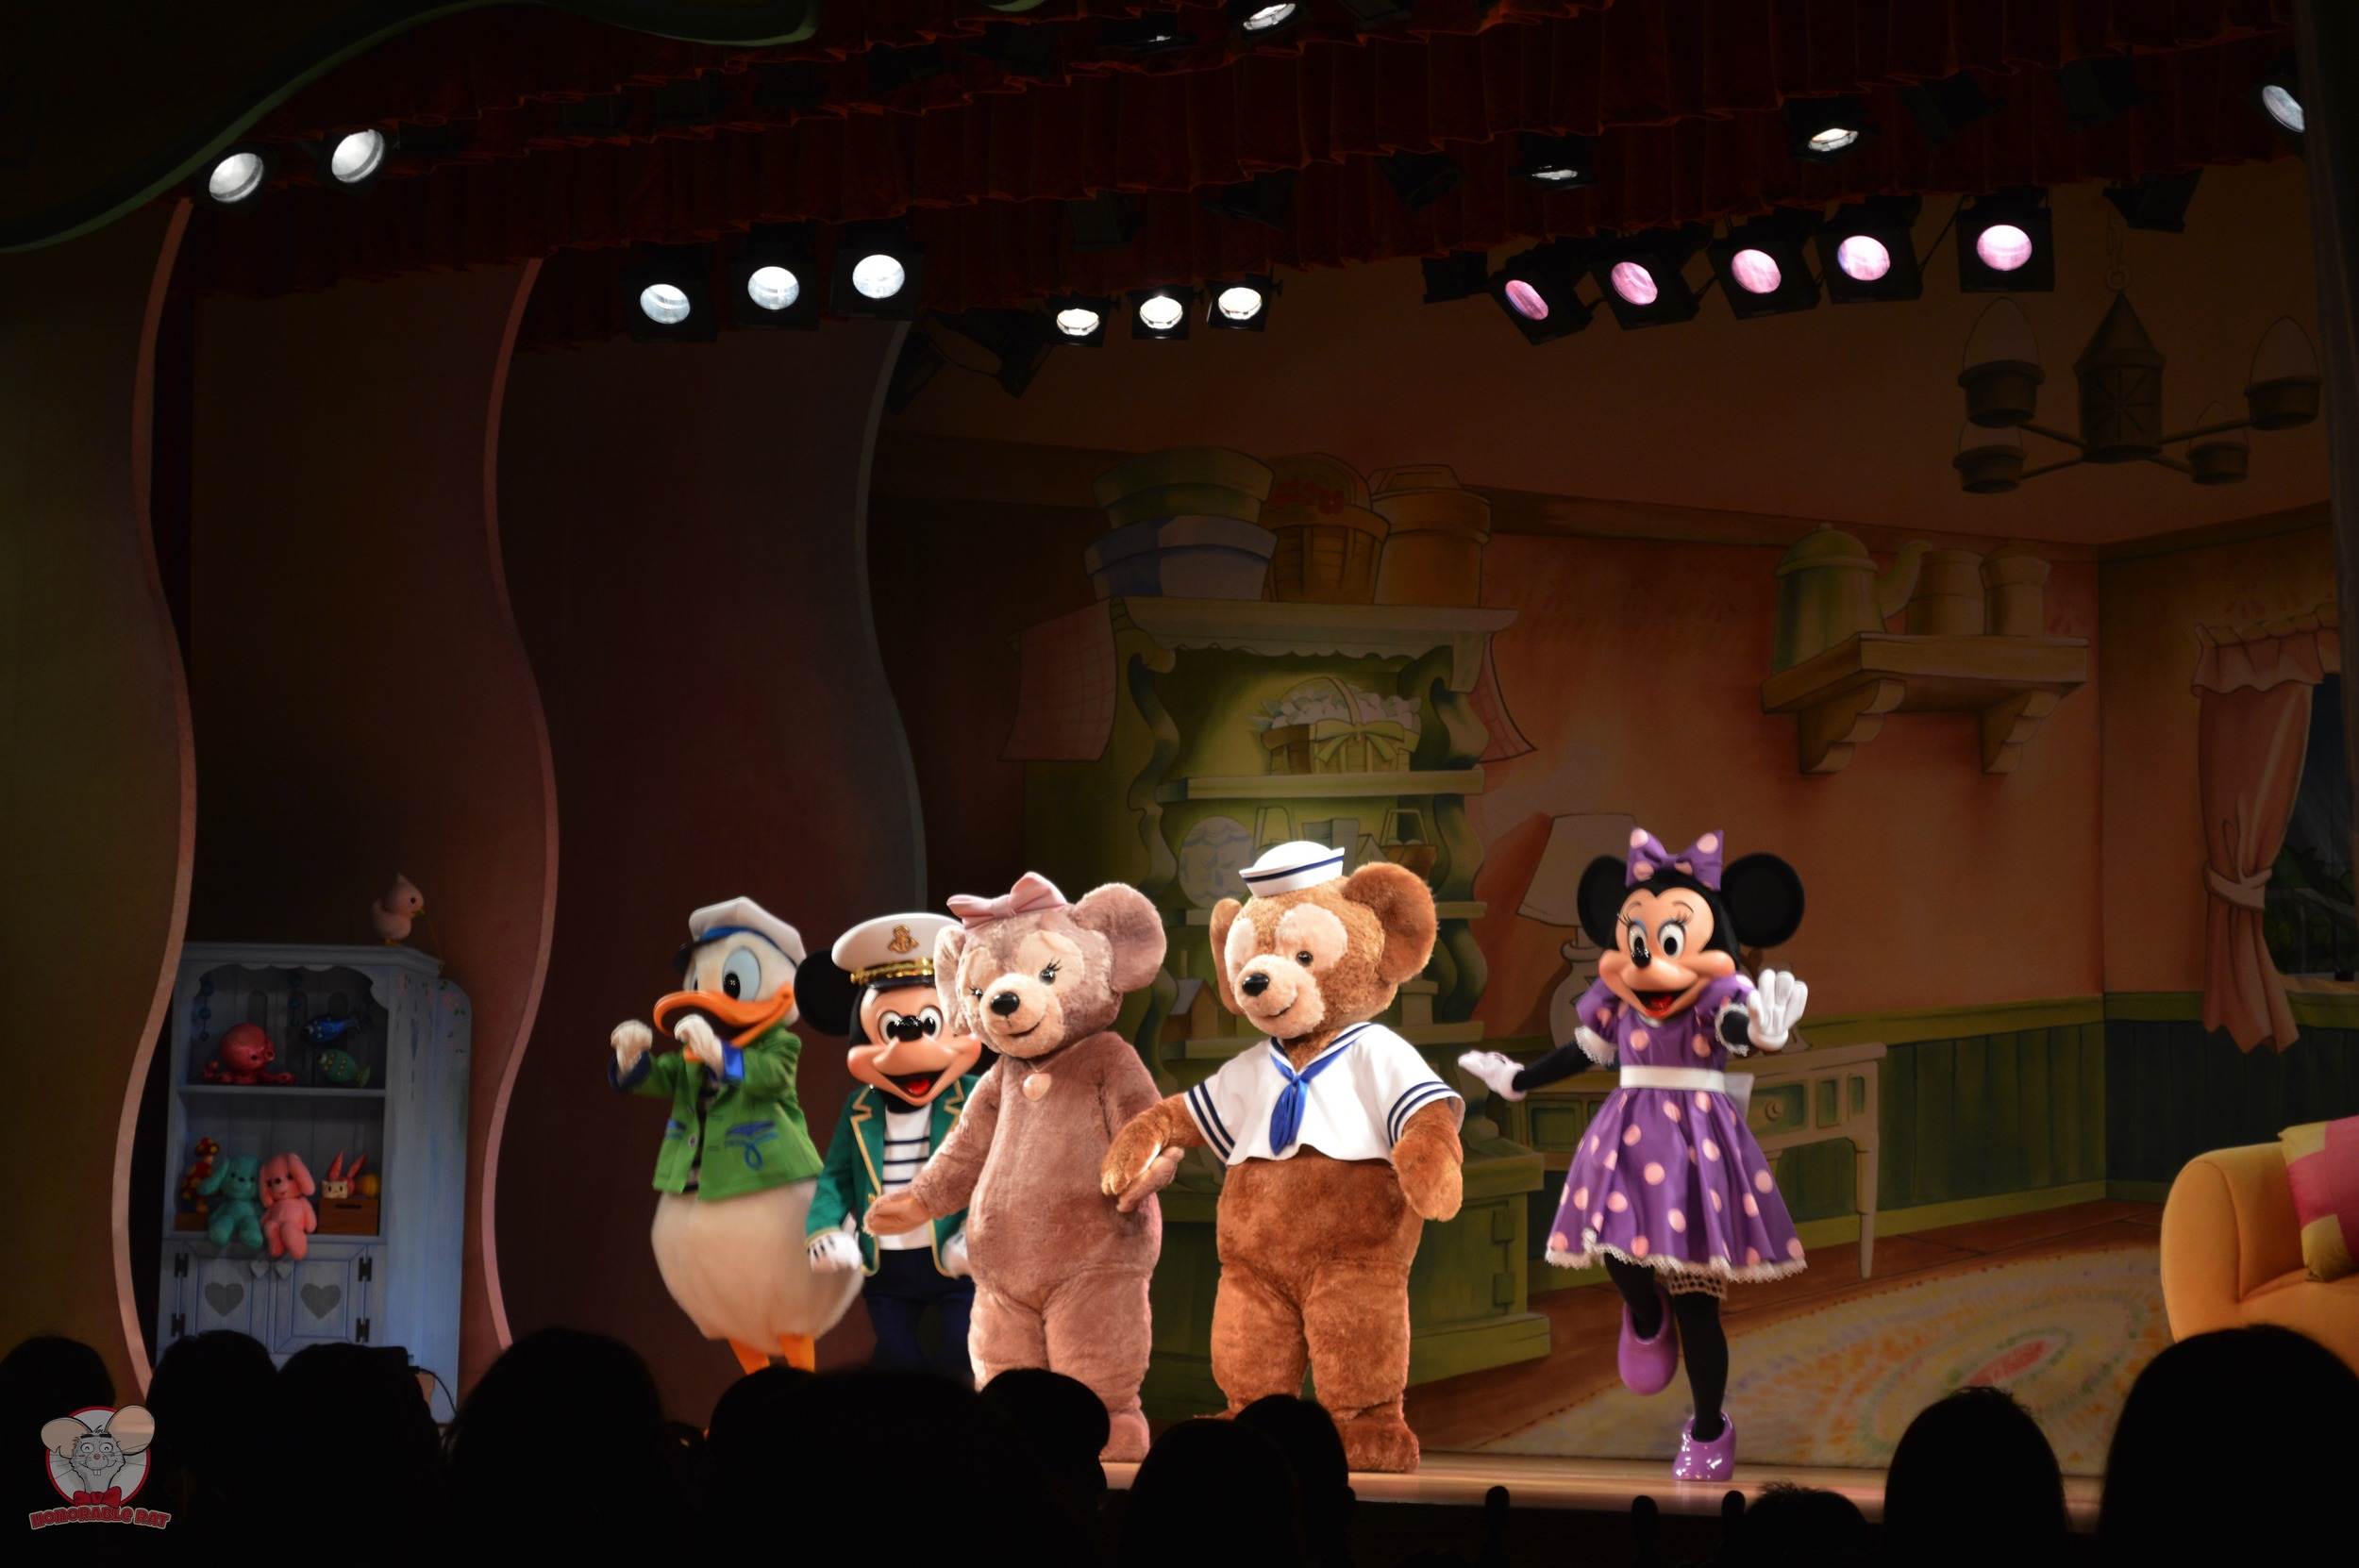 Duffy and his friends entertain you while you eat